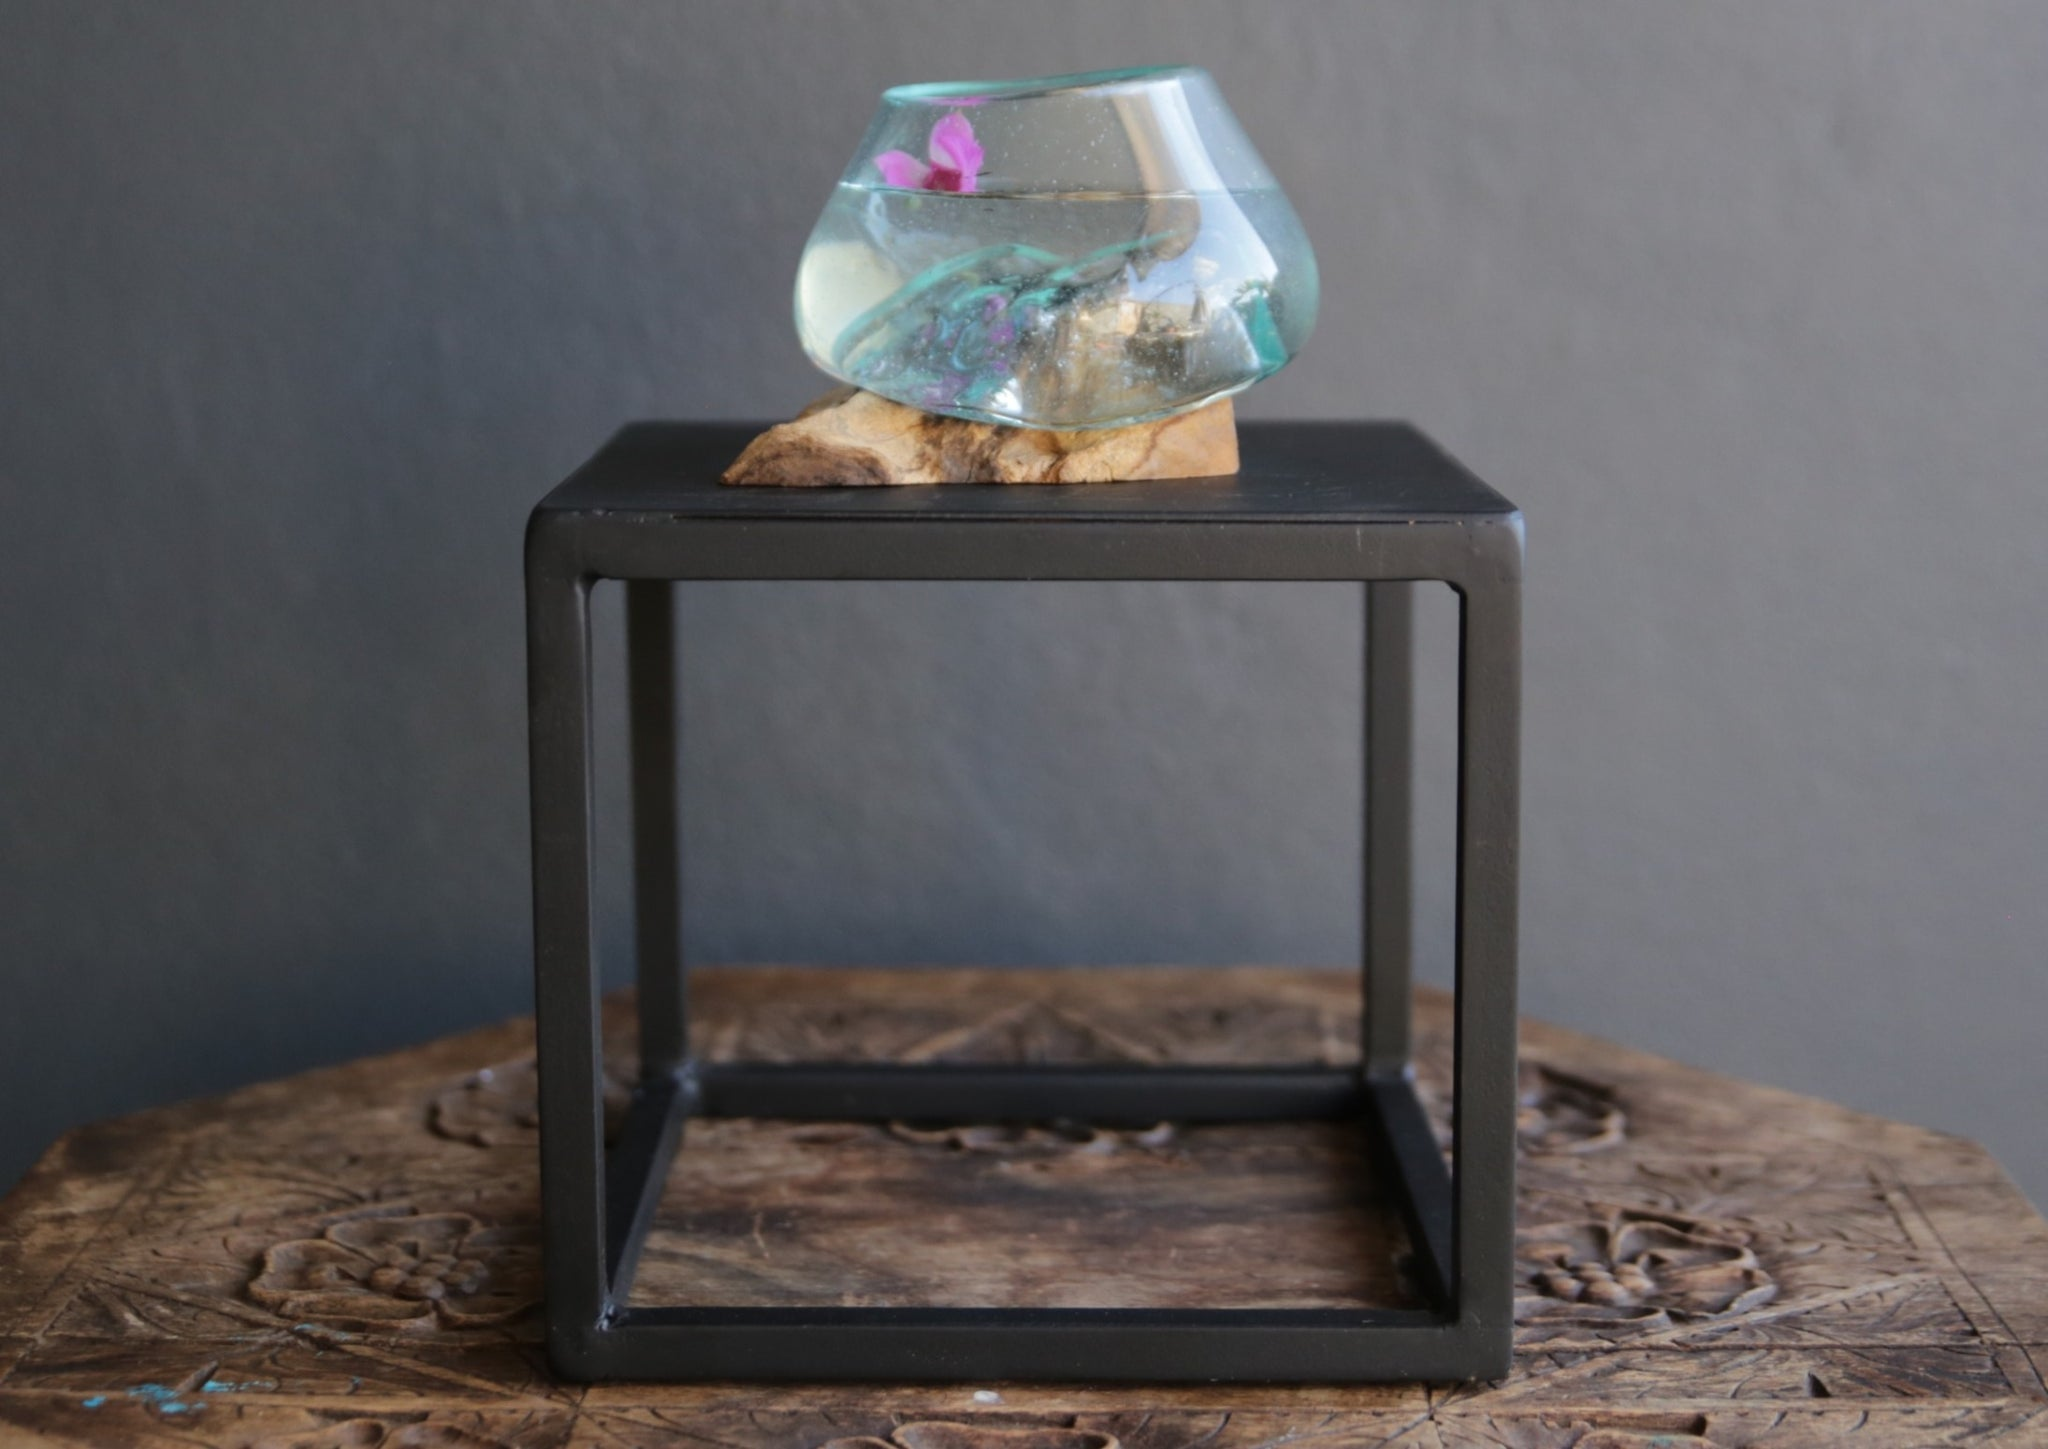 Hand-blown glass Bowl on Wooden Stand